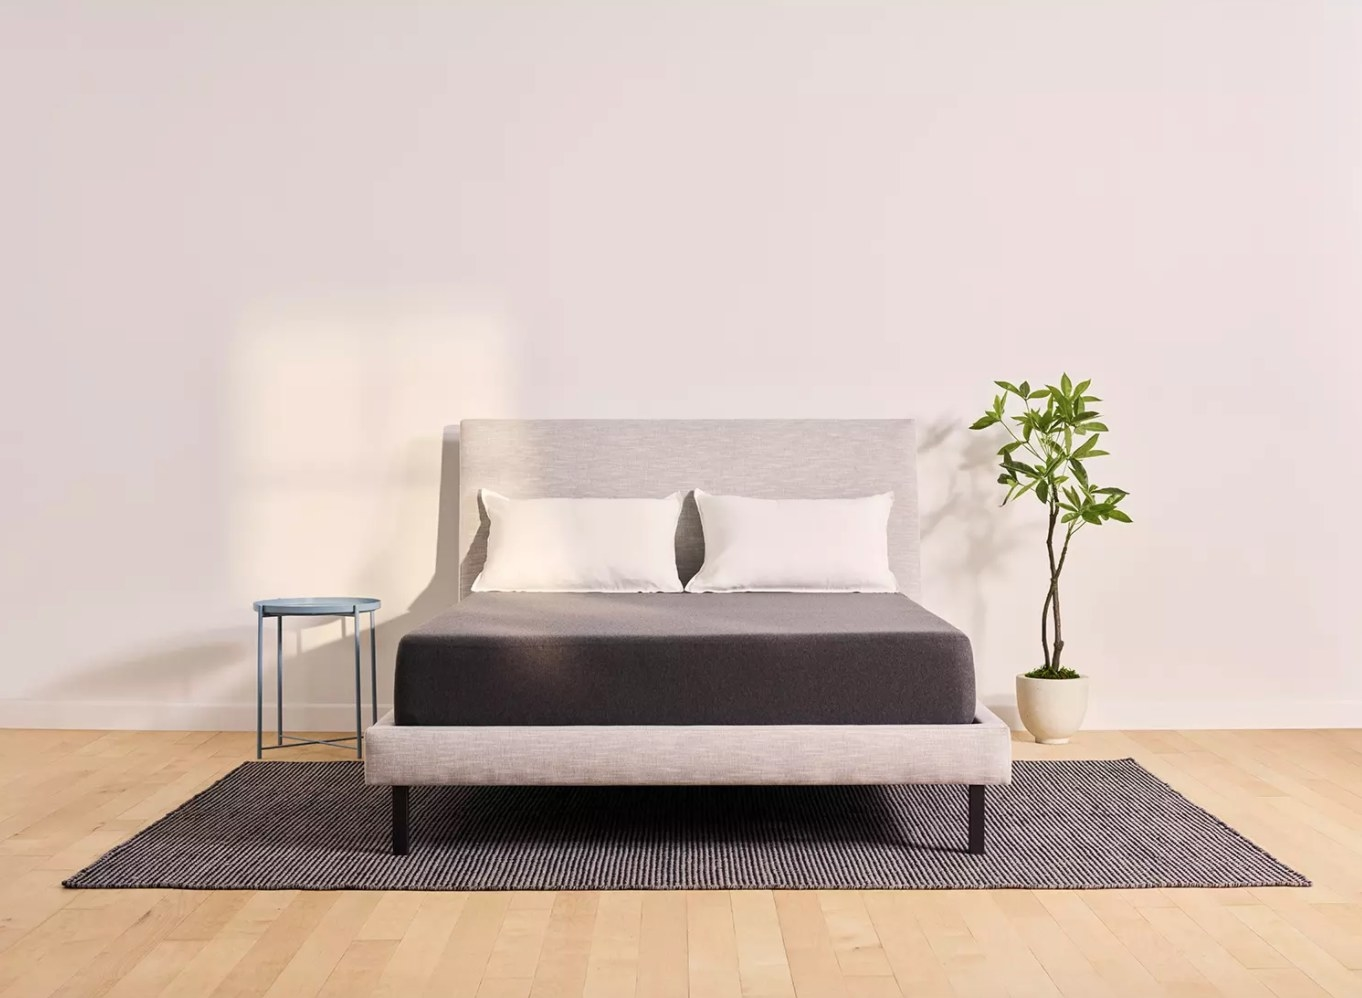 The Casper full mattress hold a gray fabric bed frame with a headboard